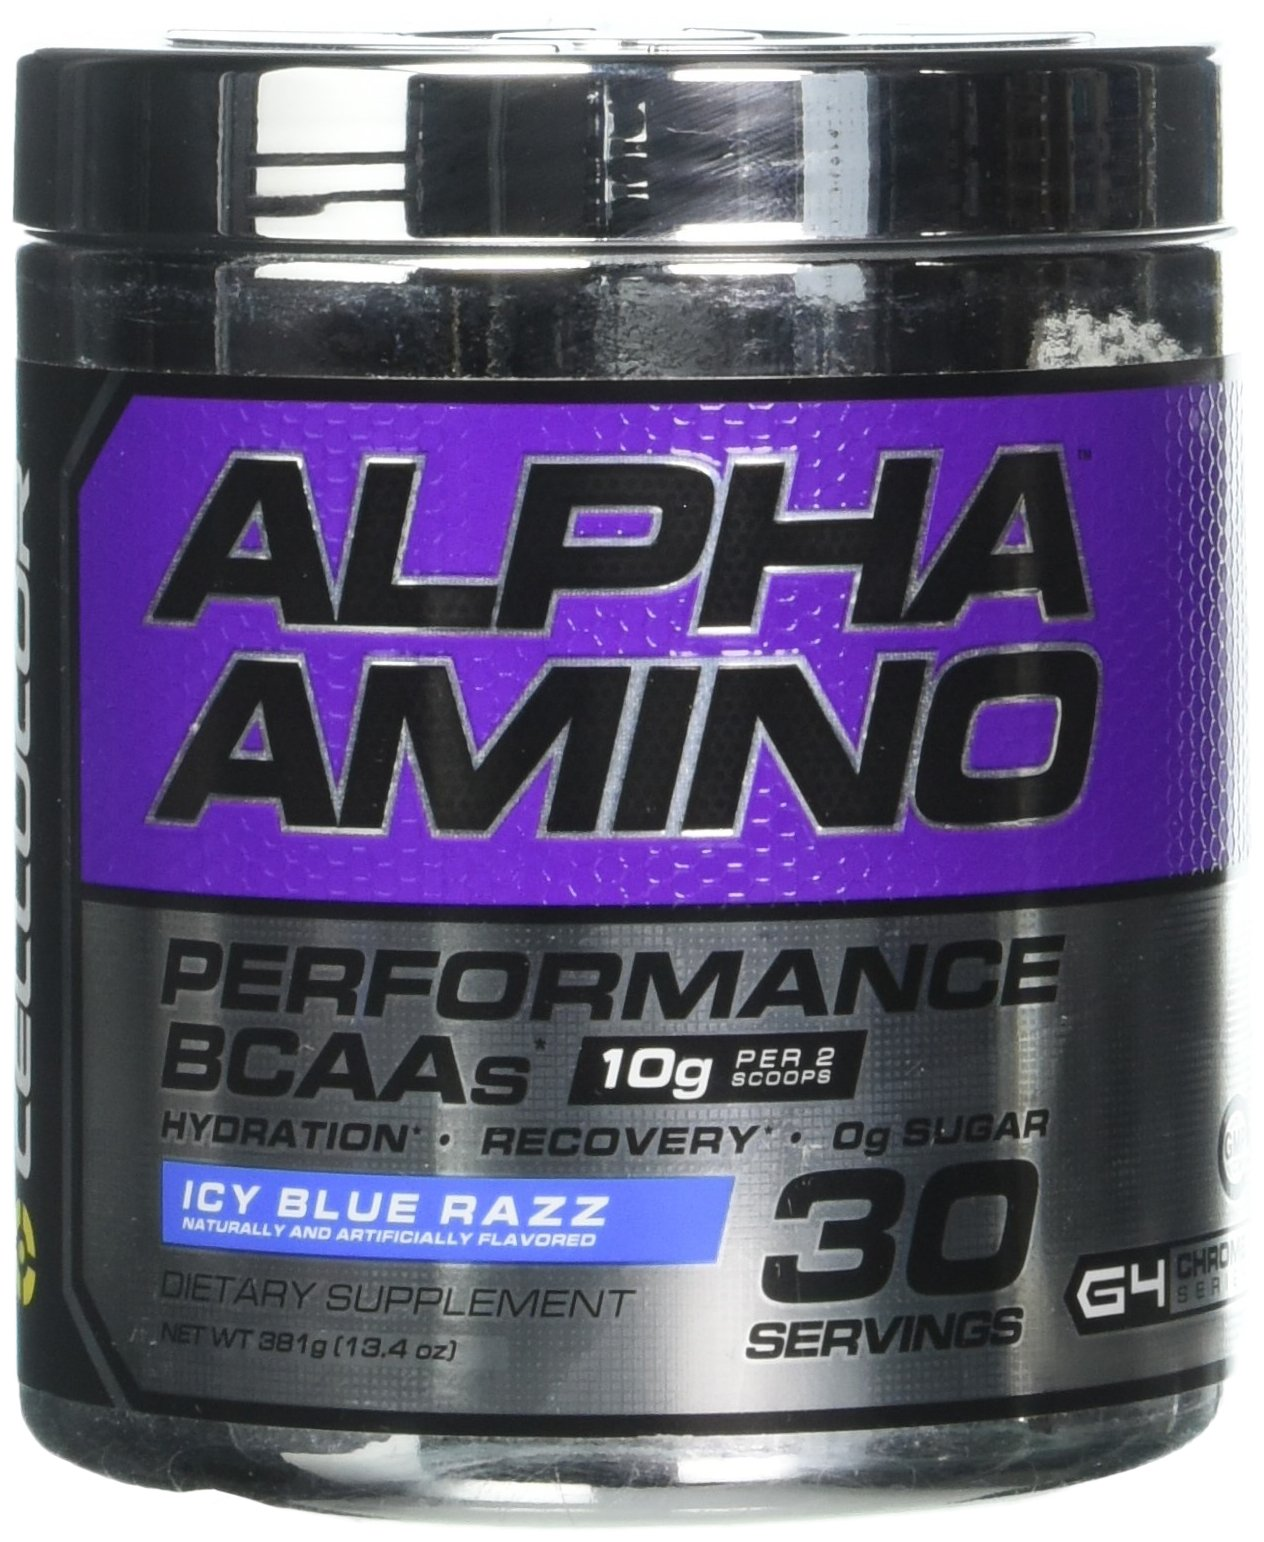 Cellucor Alpha Amino Performance BCAA Powder, BCAAs & Essential Amino Acids for Recovery, Icy Blue Razz, 30 Servings